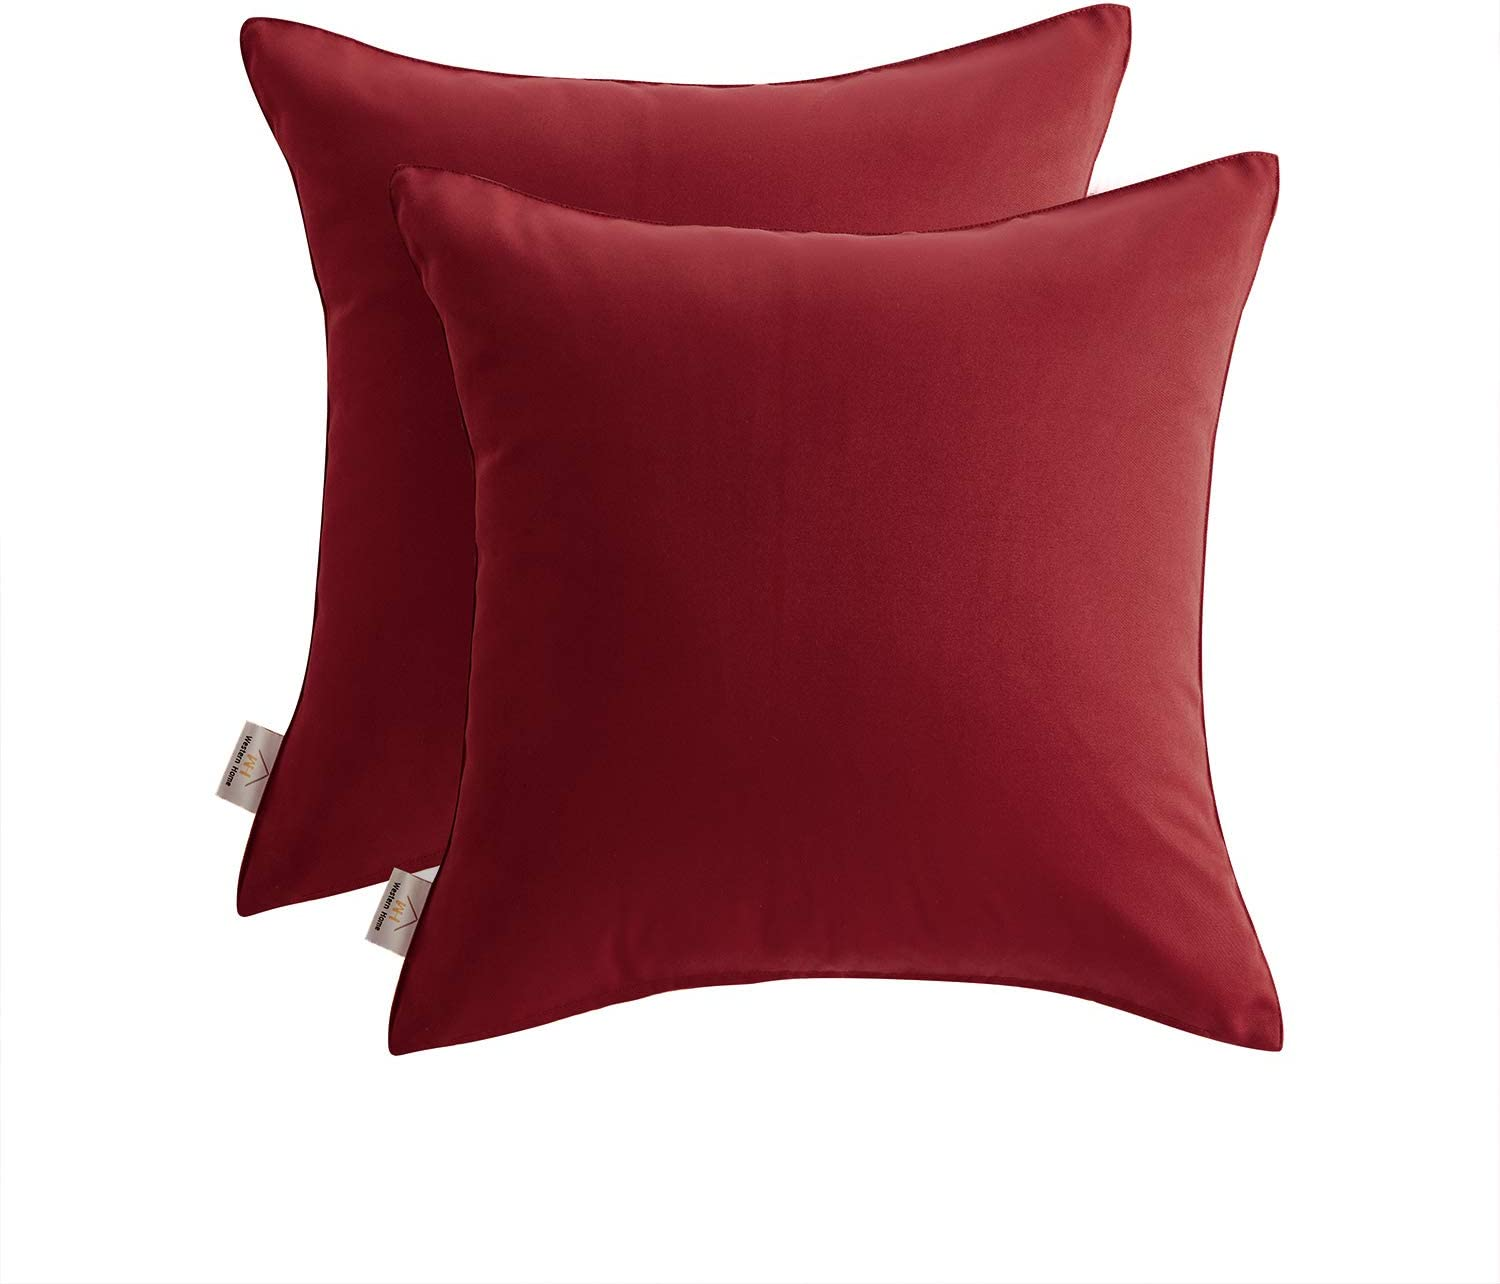 Joyaco Pack of 2 Decorative Outdoor Pillows Waterproof Throw Pillow Covers Square Pillowcases Cushion Covers Shell for Couch Patio Garden Tent Park Spring Summer Decor 20 x 20 Inch Red